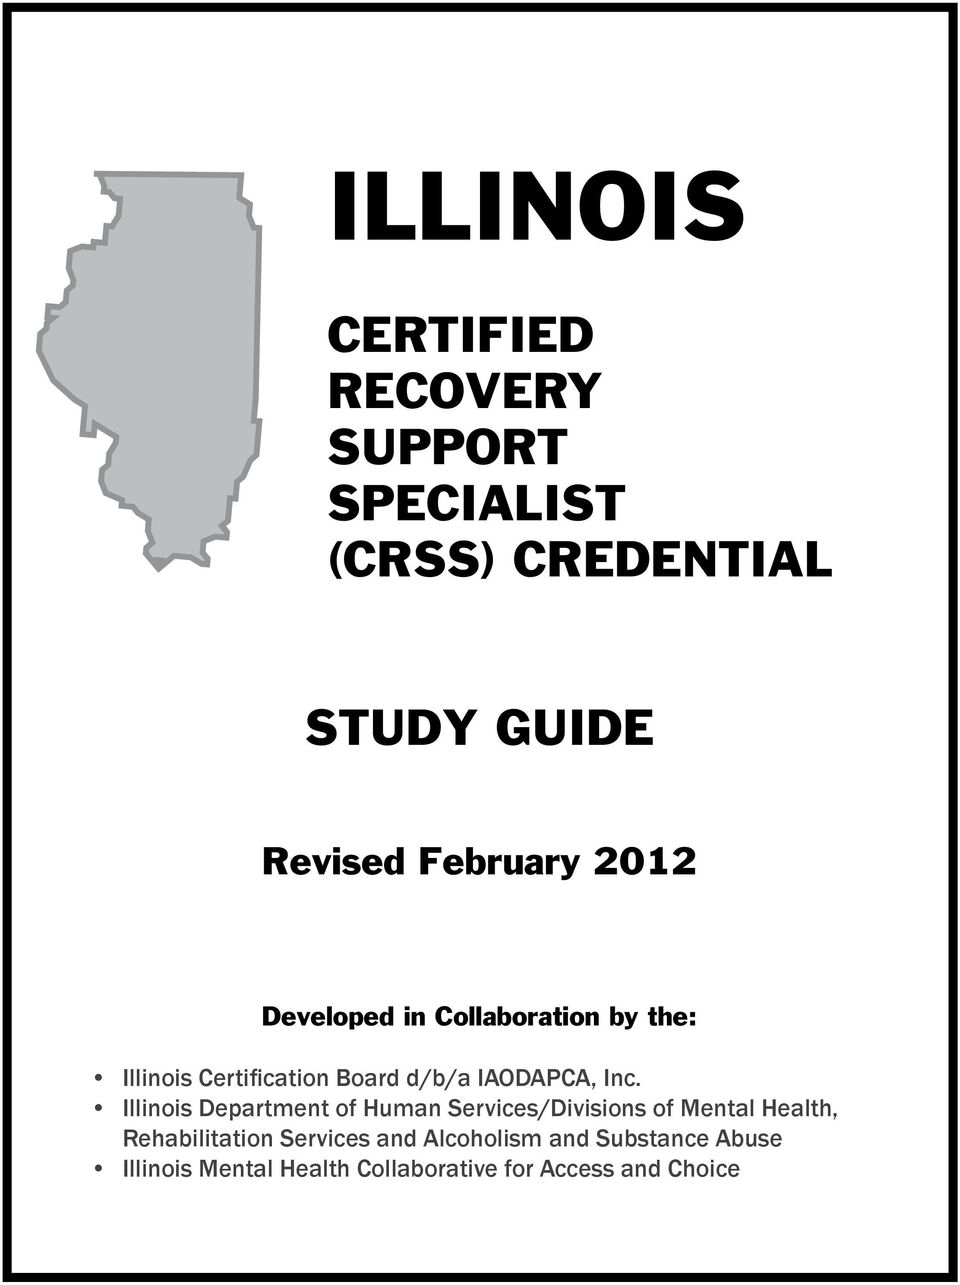 Illinois Certified Recovery Support Specialist Crss Credential